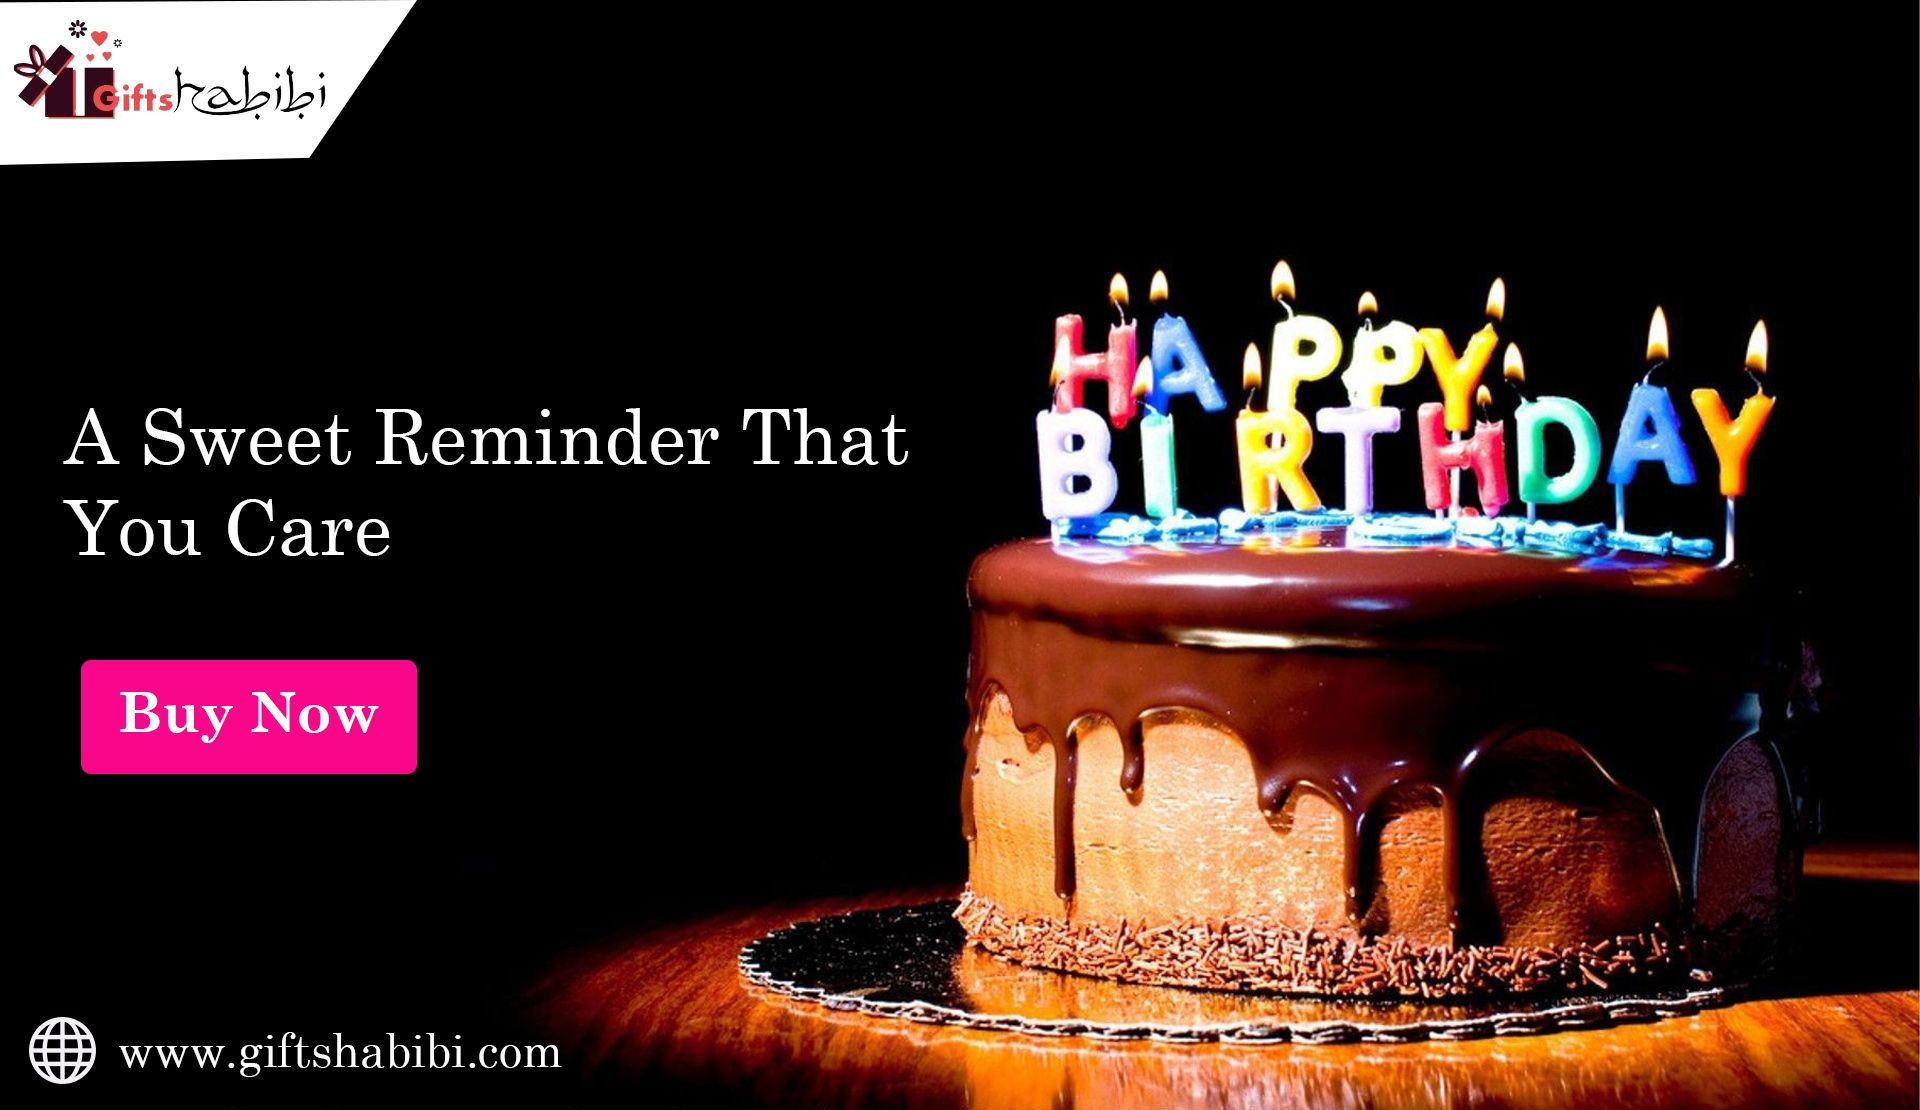 We Are One Of The Leading And Top Reviewed Online Stores In Dubai Uae If You Are Looking For Birthday Gifts An Cake Online Gifts Dubai Personalised Gift Shop